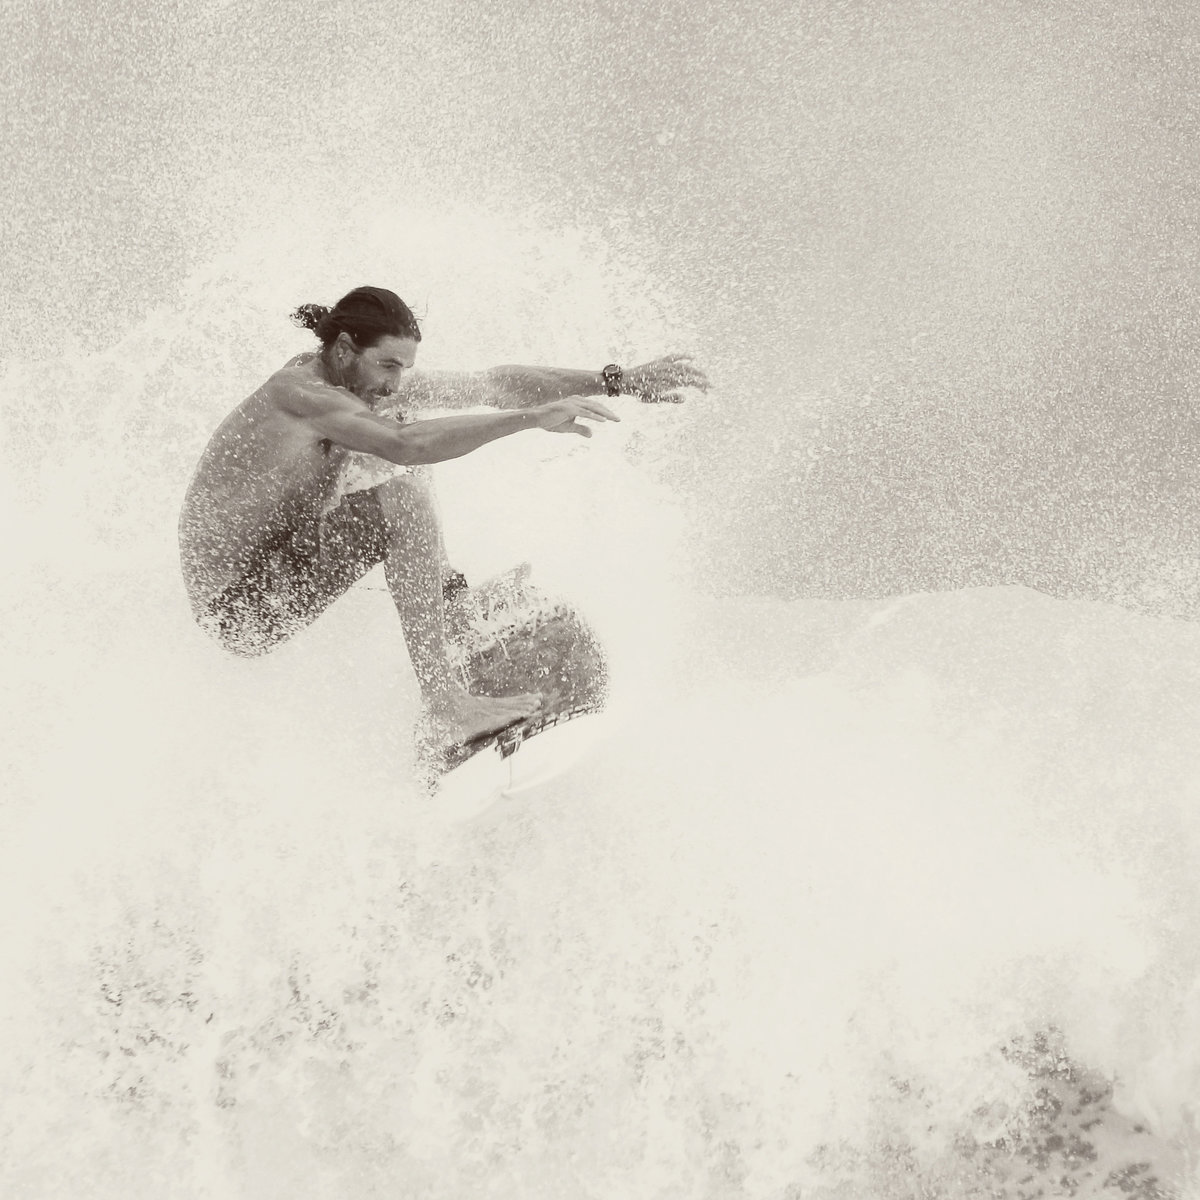 Surfsup-Three-BW-SQ